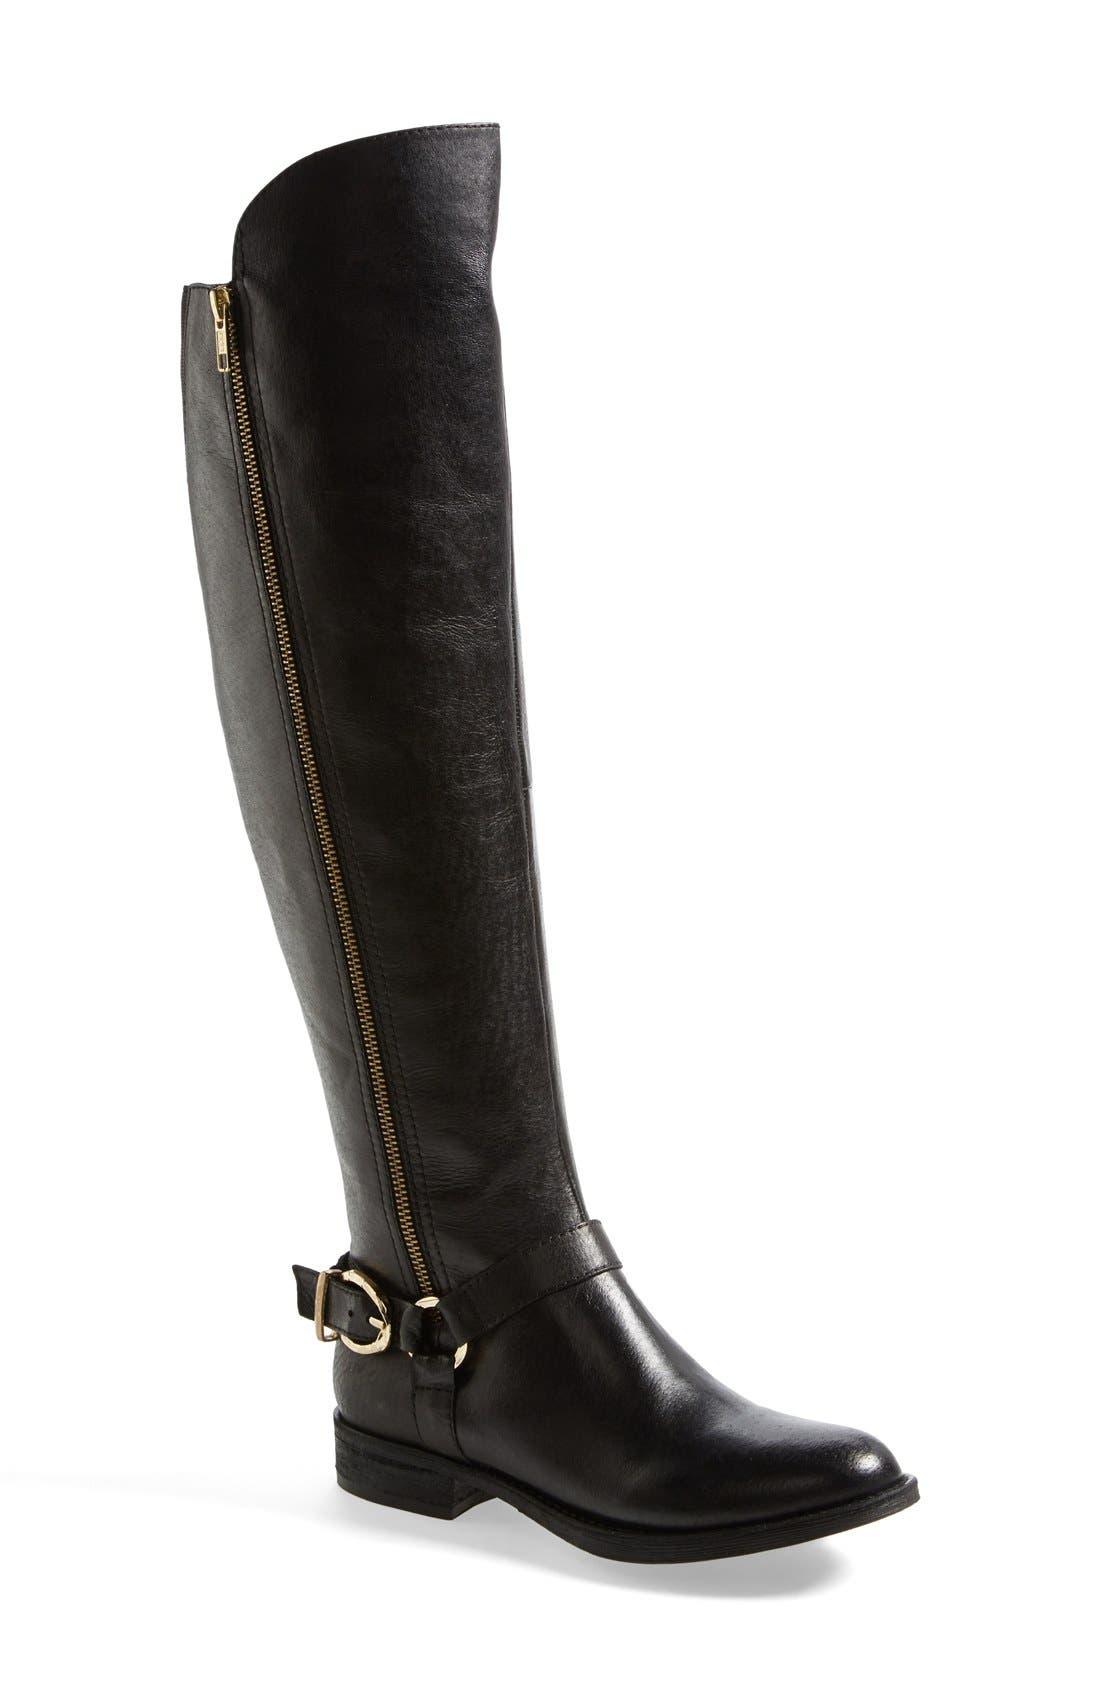 Main Image - Steve Madden 'Skippur' Over The Knee Boot (Women)